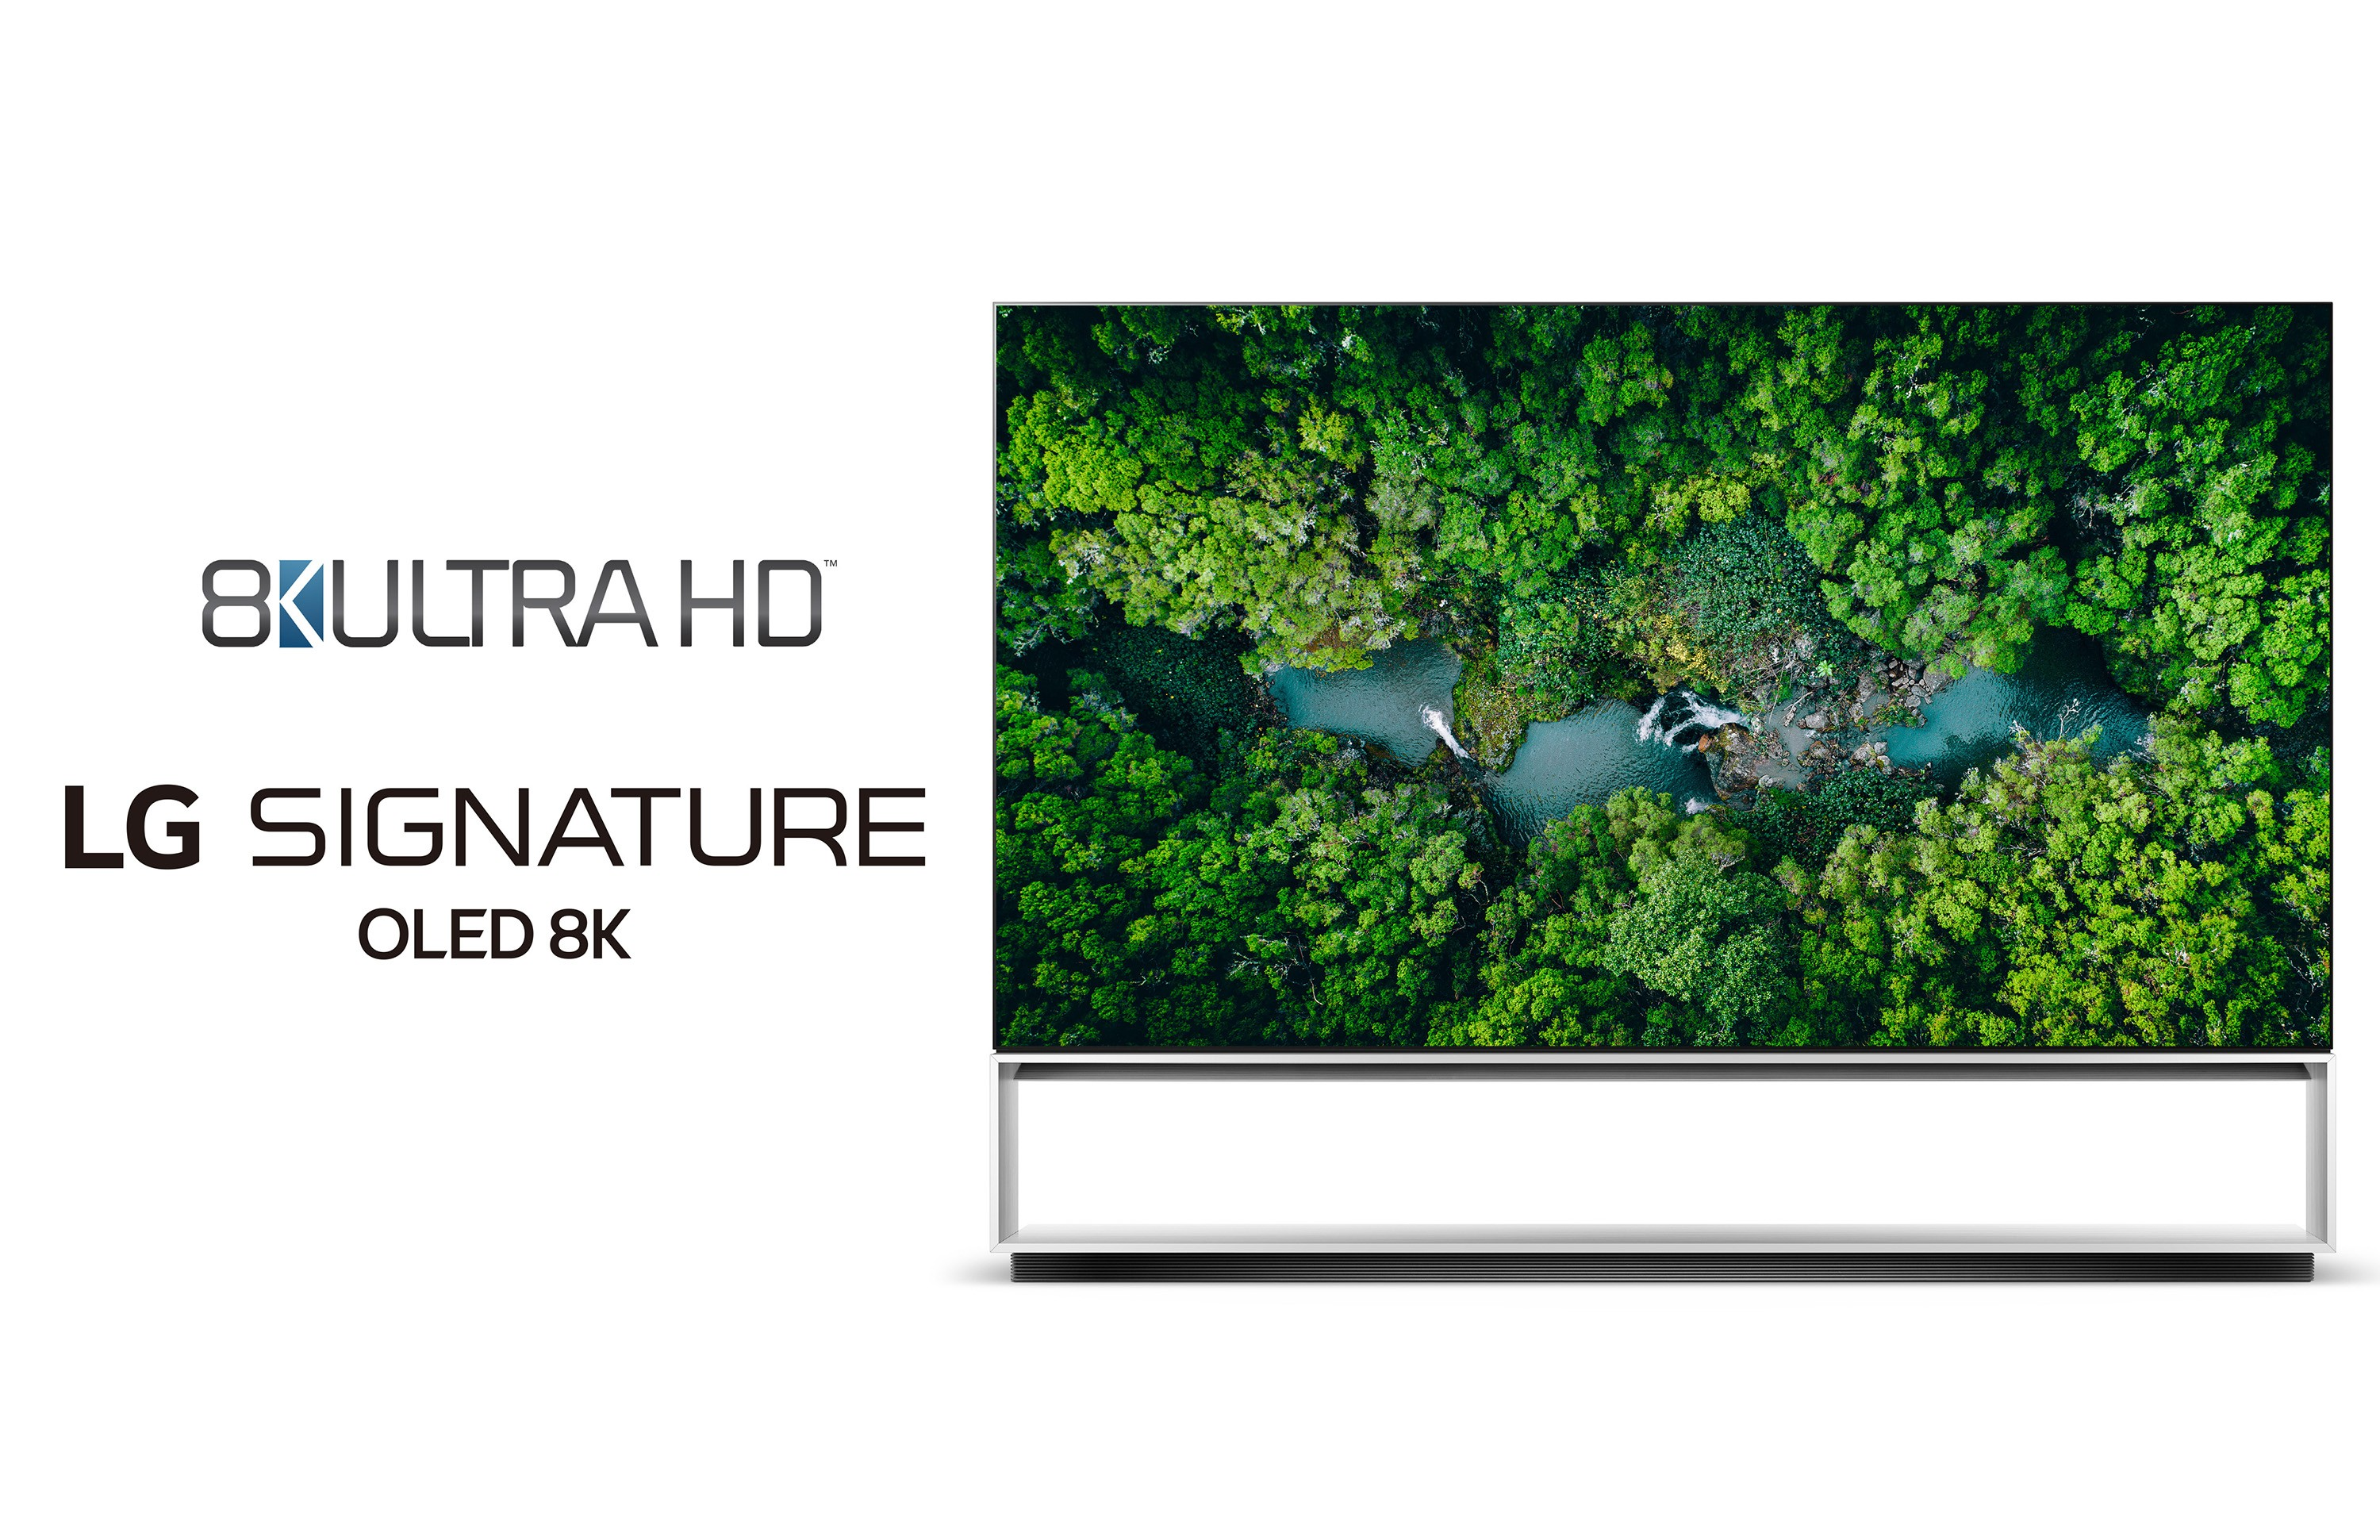 LG beats out Samsung with first industry-certified 8K Ultra HD TV